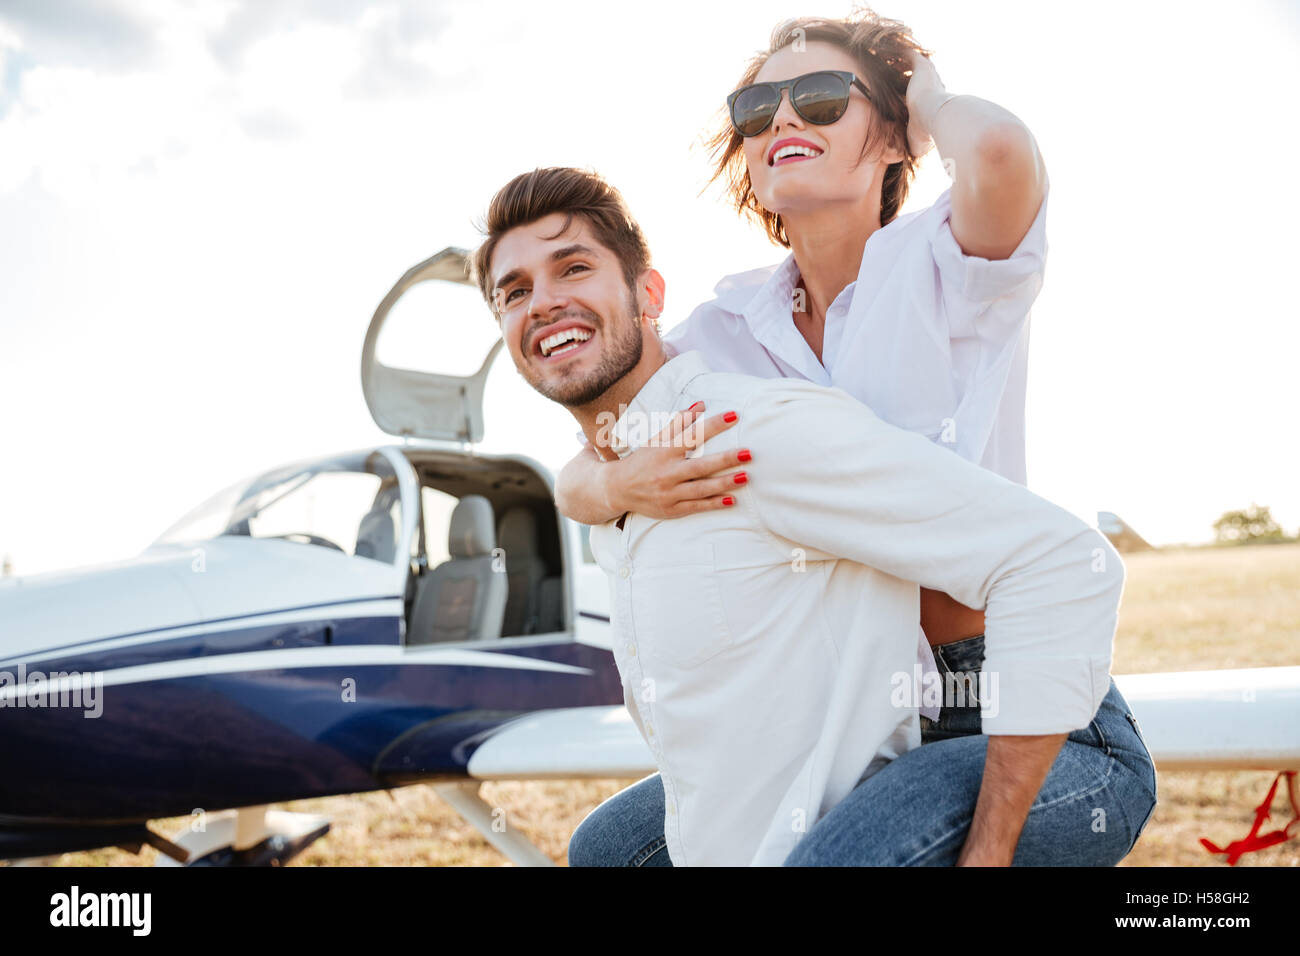 73ccfc72a8a Happy young couple laughing and having fun on runway near private aircraft  - Stock Image